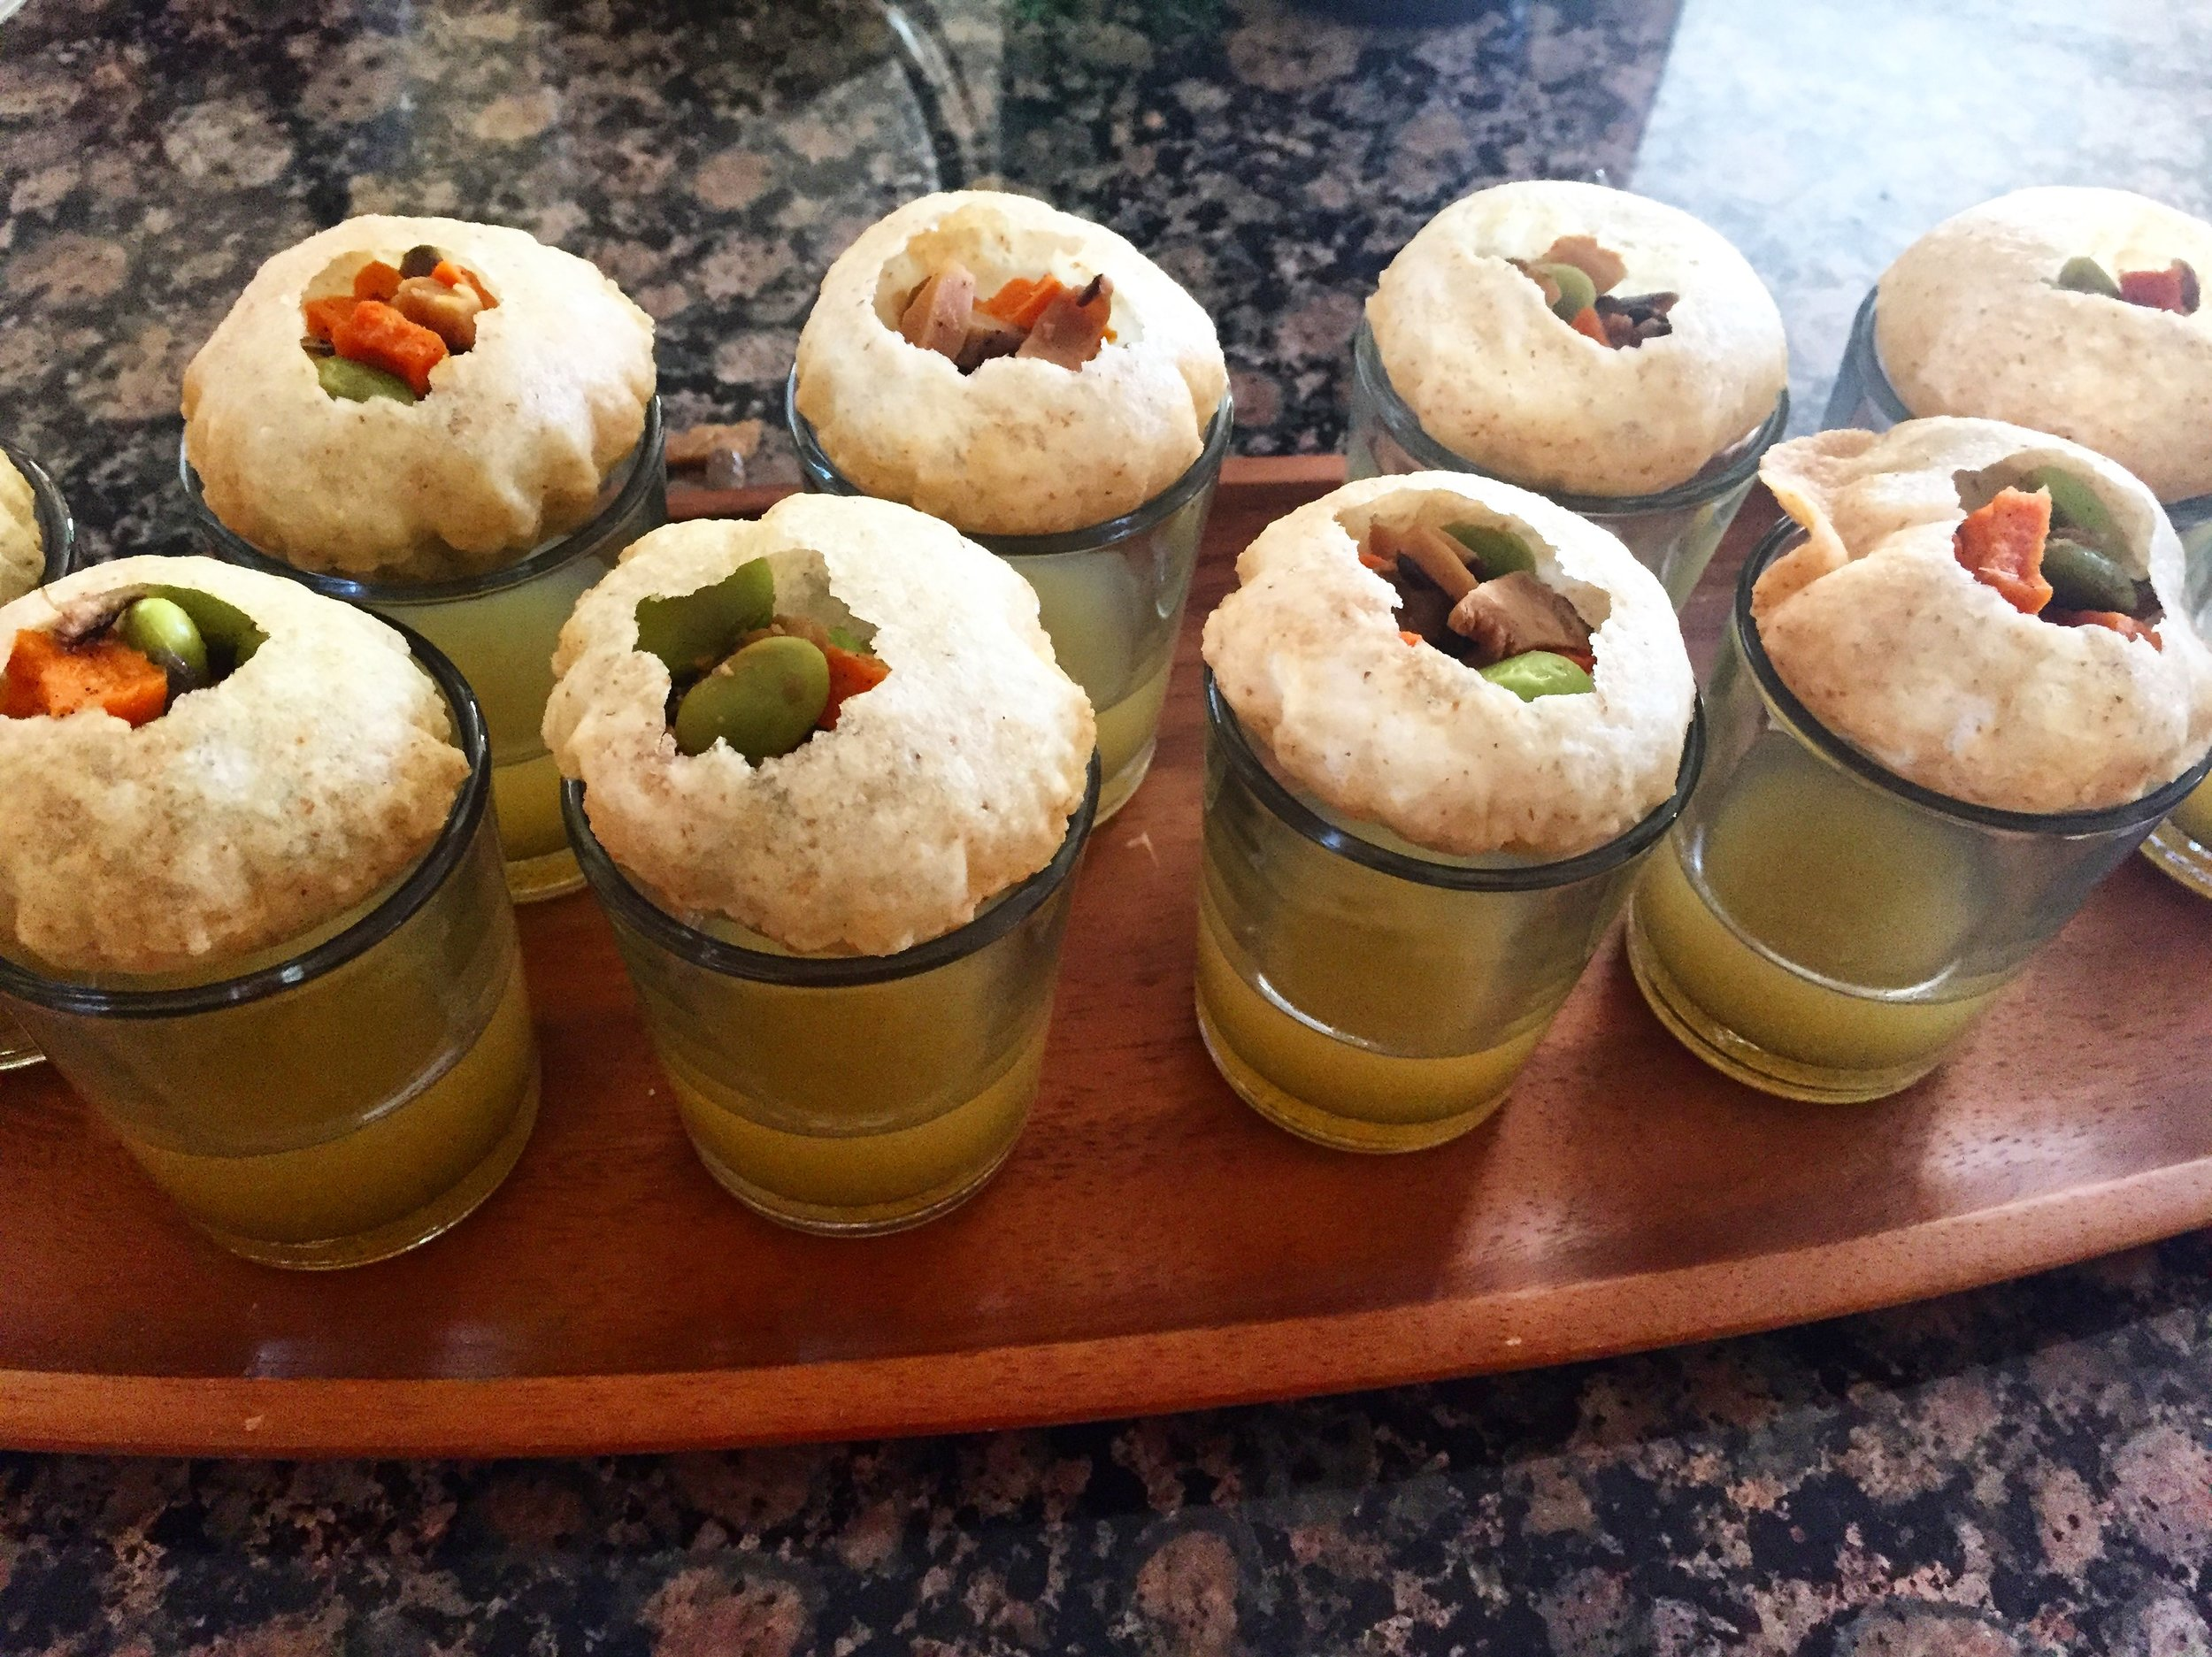 Pani puri shot appetizers!Chef Kumar put a creative twist on this by combining Indian and Japanese flavors. Each puri was filled with edamame, shiitake mushrooms and sweet potatoes, which was enjoyed with a shot mixture of green mango juice, ponzu, yuzu, ginger, rice wine vinegar and masala.